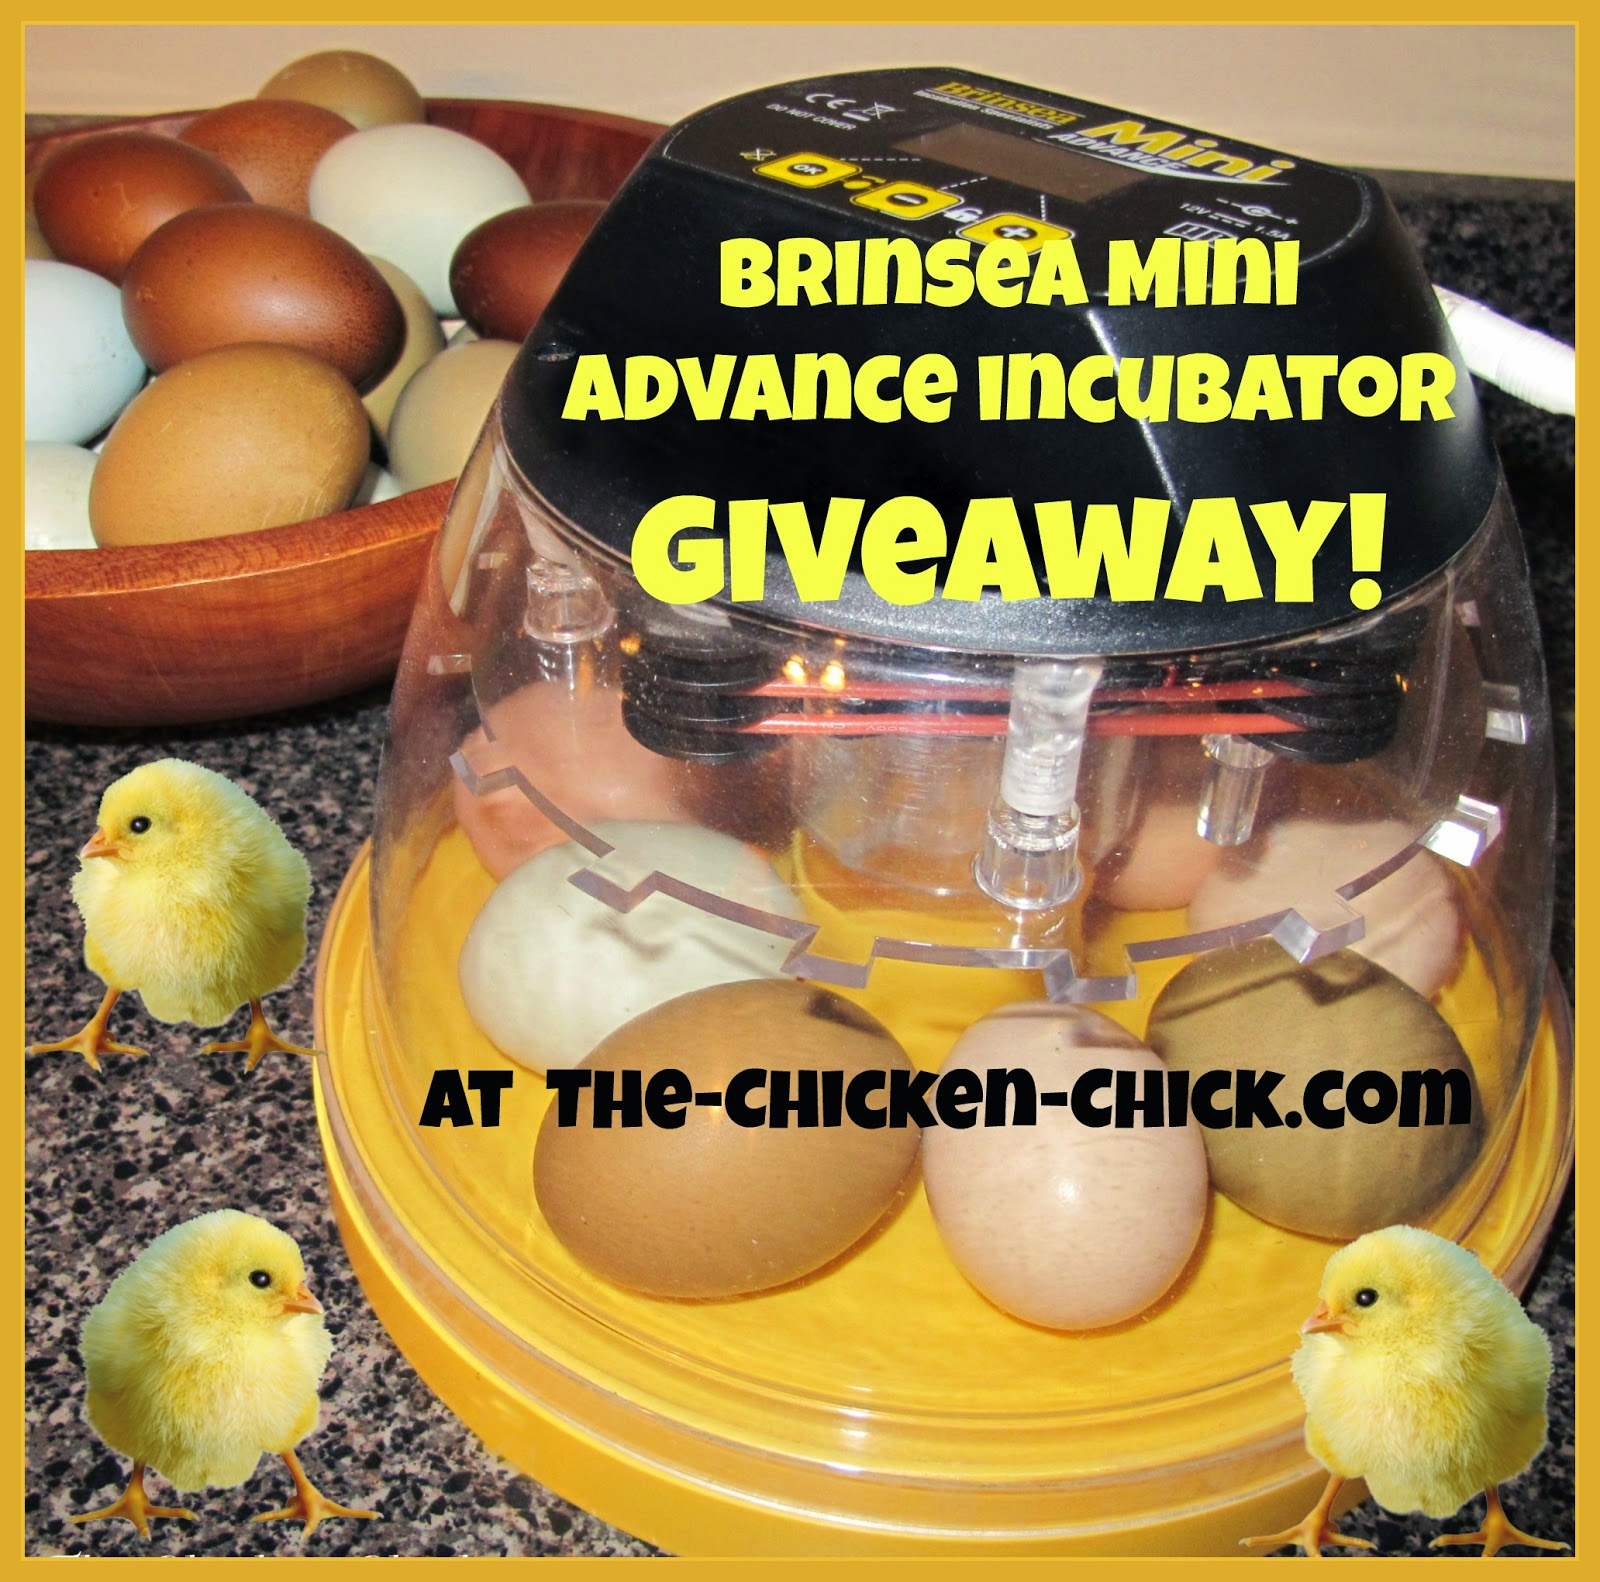 Brinsea Mini Advance Incubator Giveaway at The Chicken Chick®